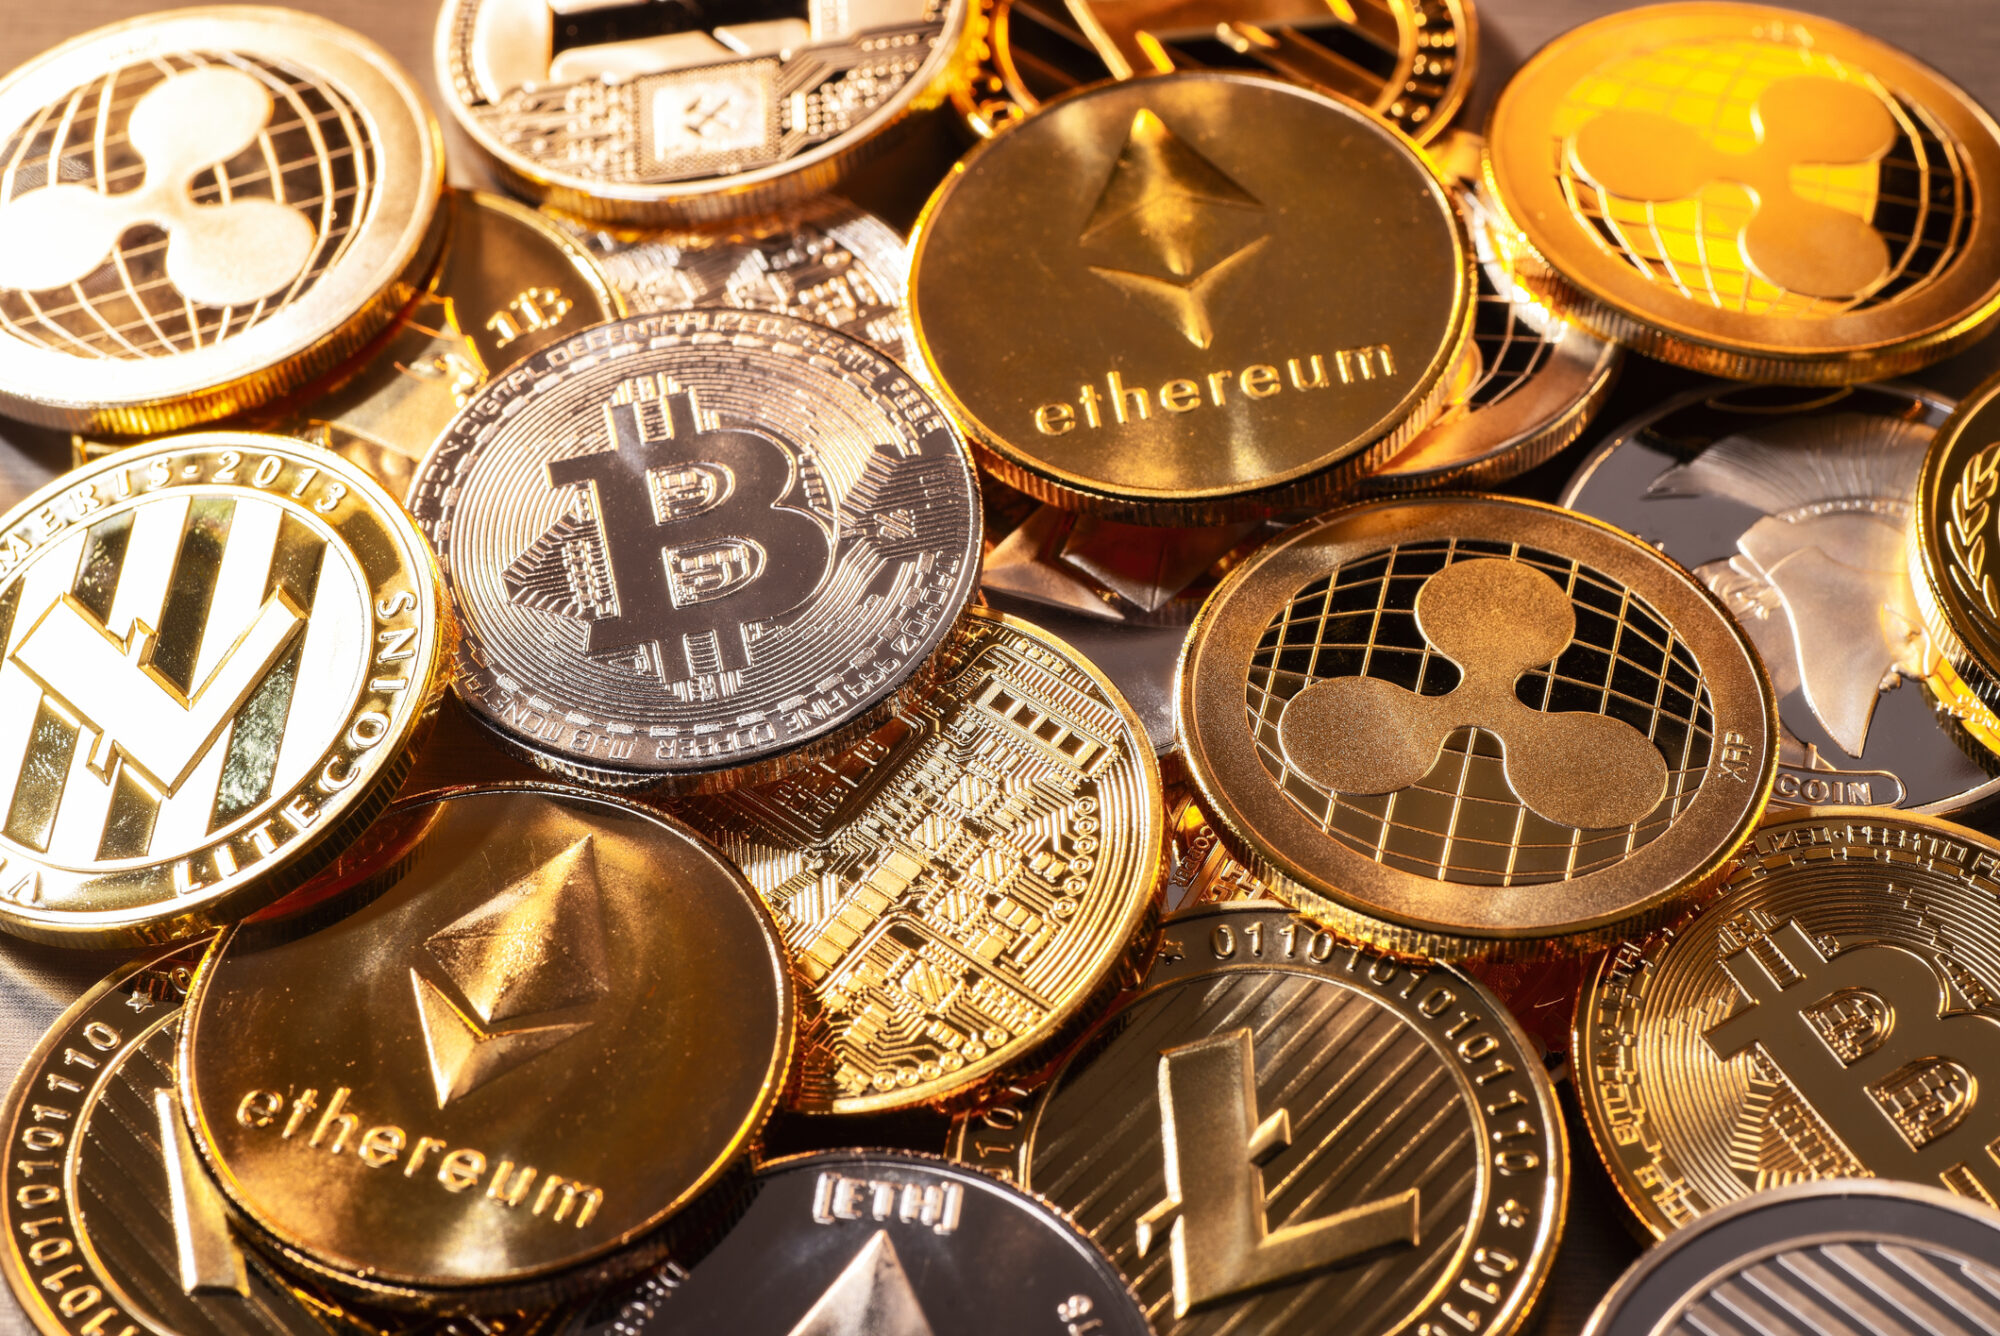 CRYPTO ASSETS IN THE UAE REGULATIONS